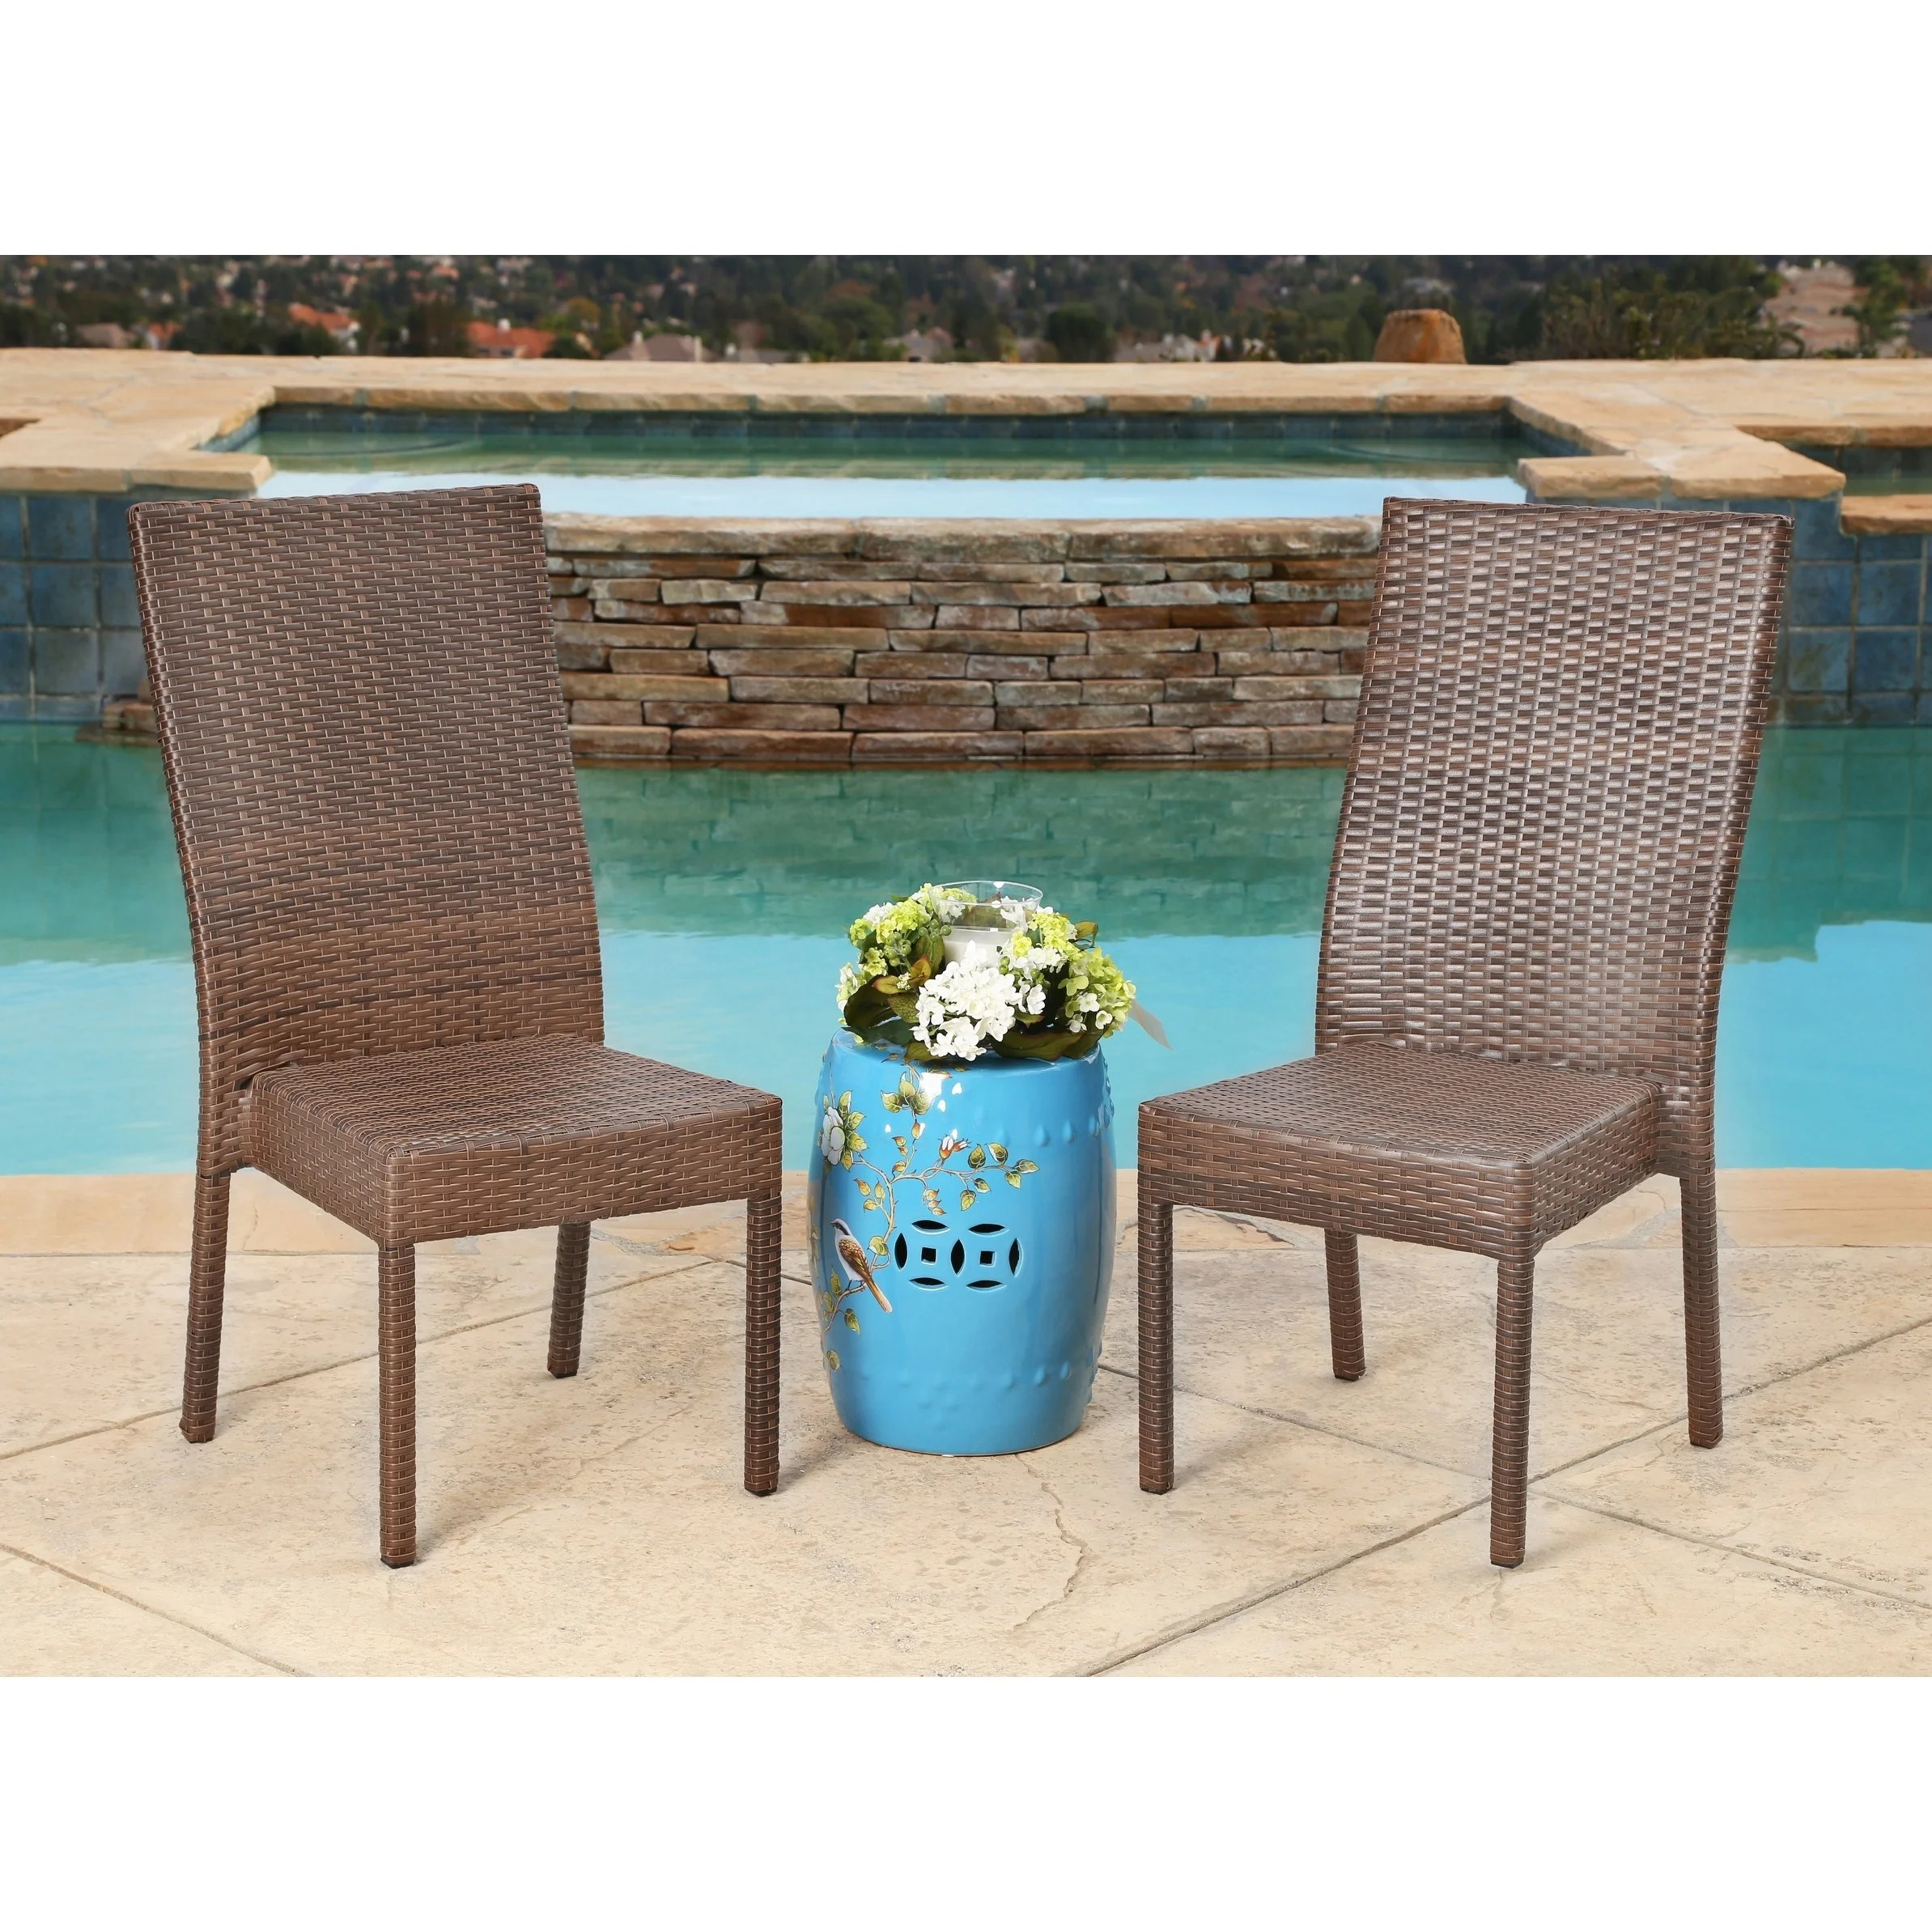 Wicker Outdoor Dining Chairs Abbyson Palermo Outdoor Brown Wicker Dining Chairs Set Of 2